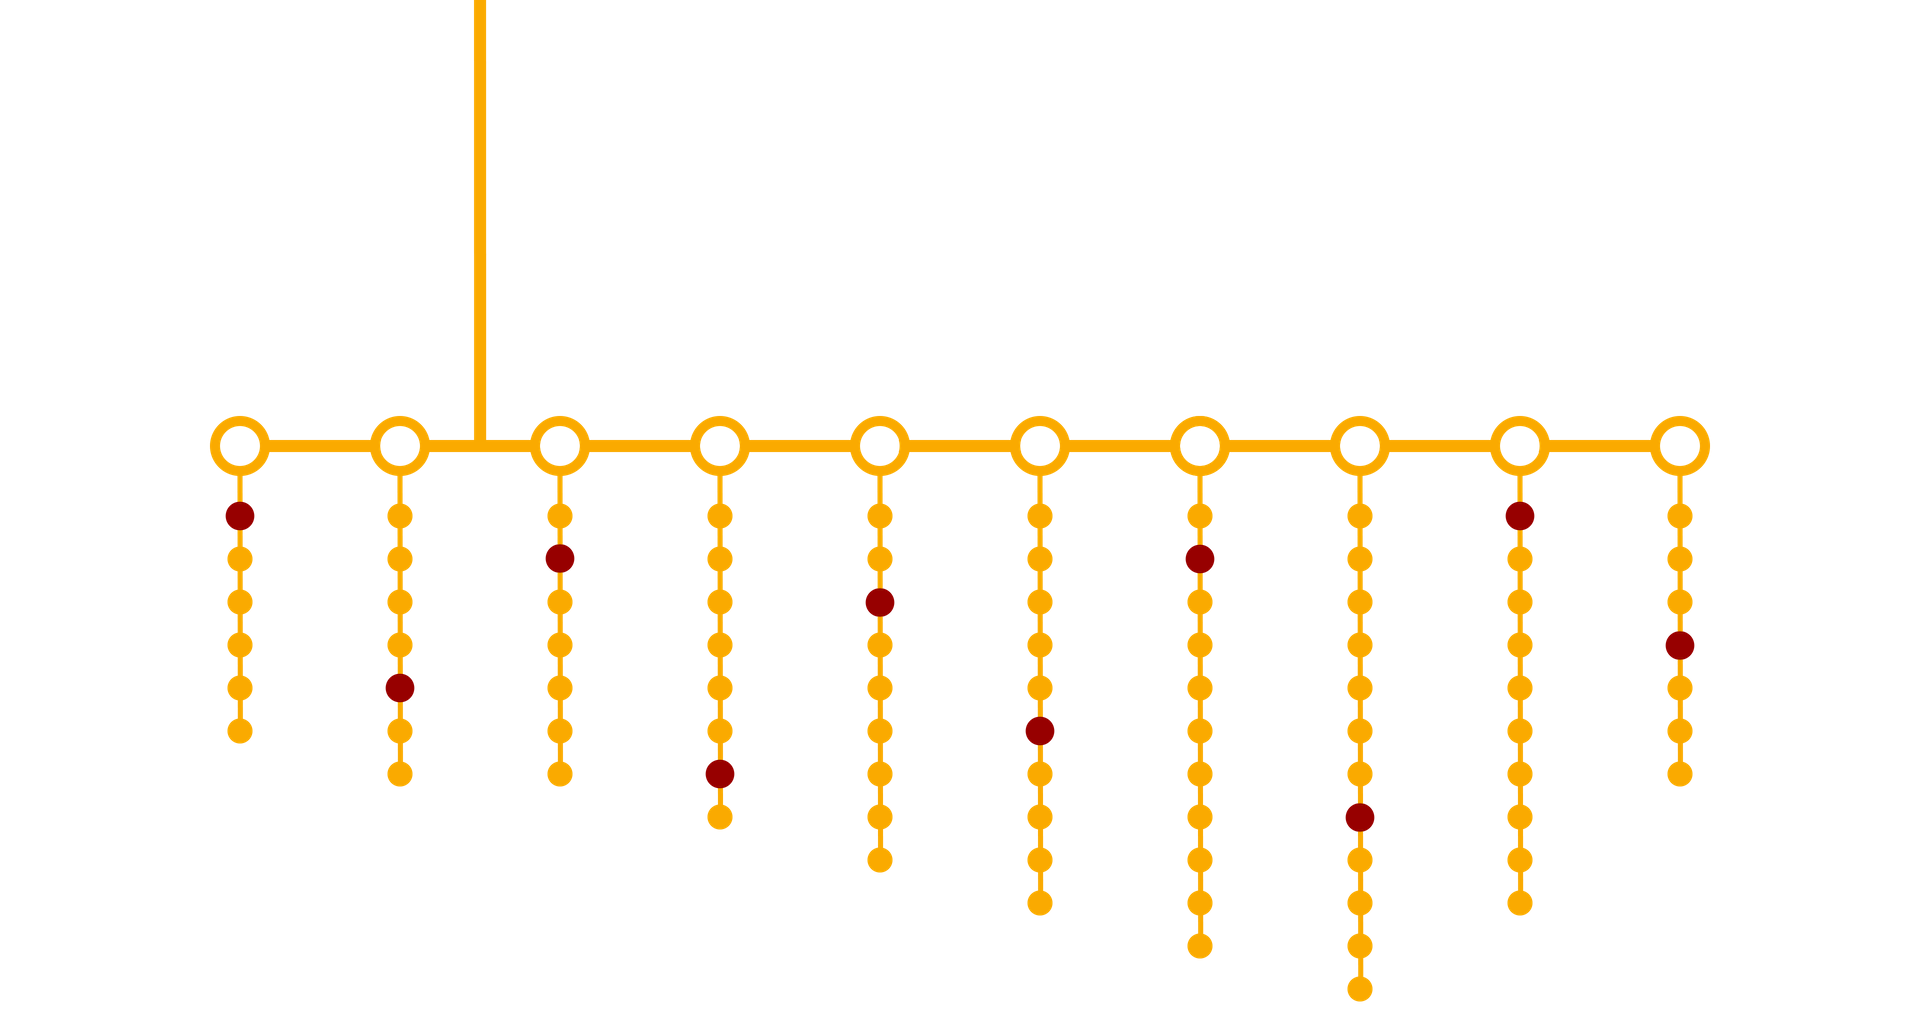 1000 textures arranged in 10 different categories and sub-categories